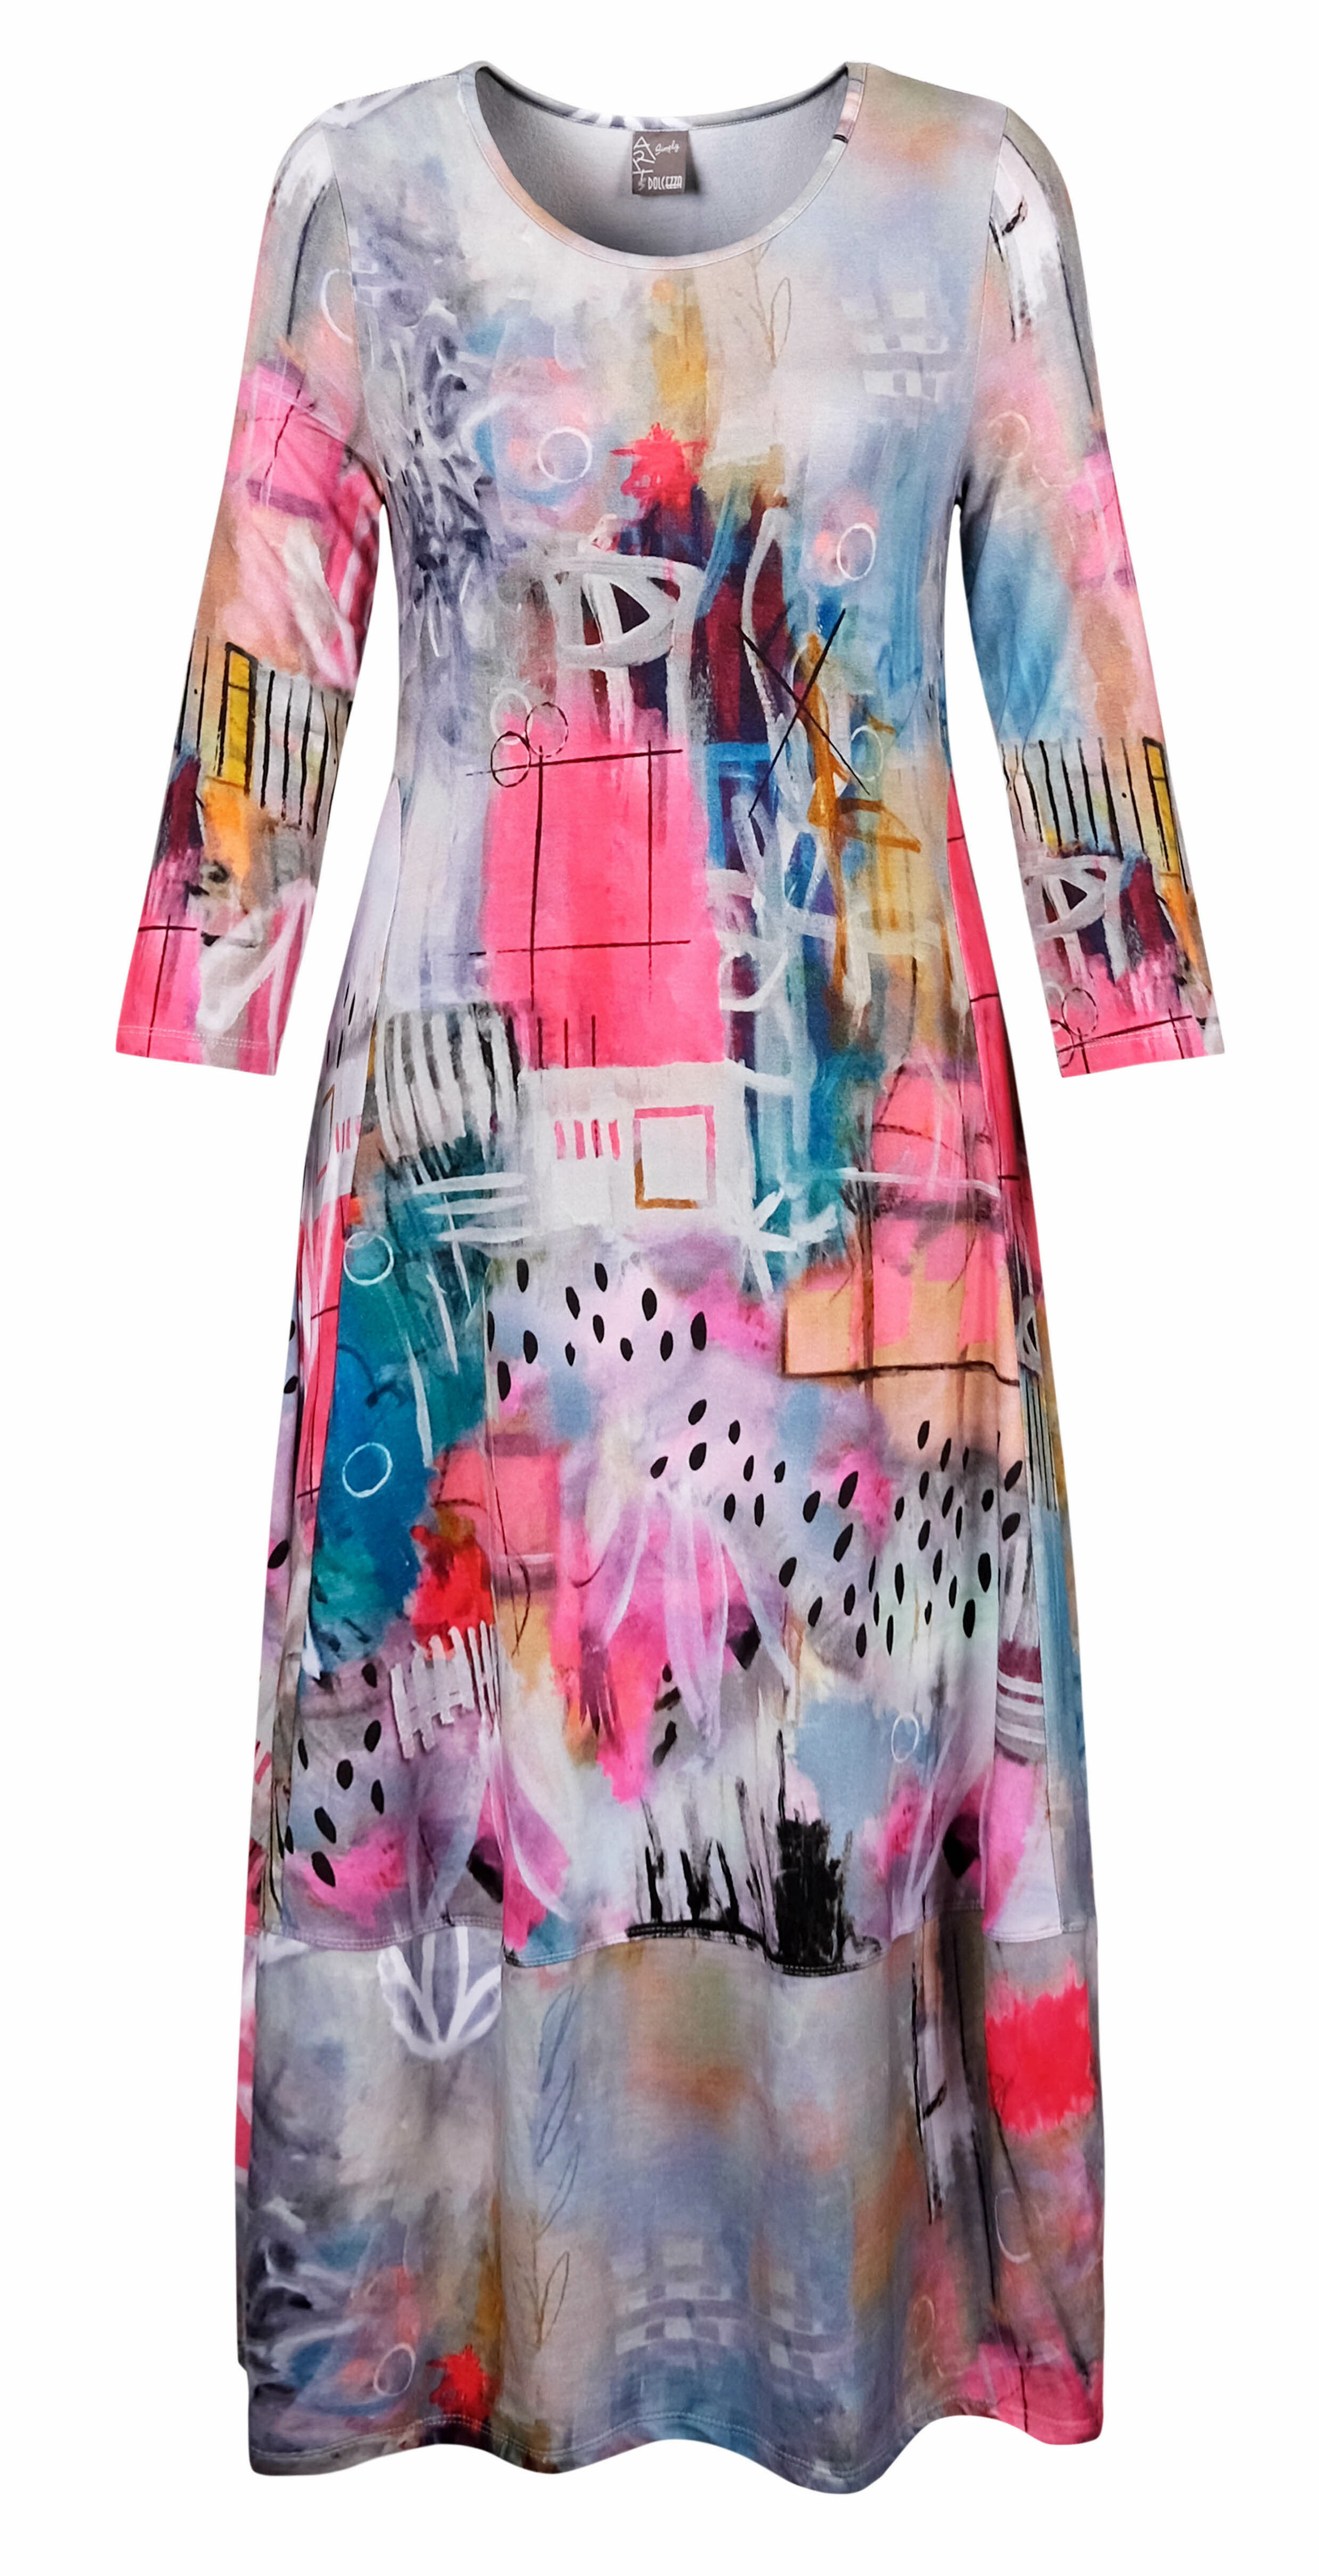 Simply Art Dolcezza: Receive The Best Things In Life Abstract Art Dress DOLCEZZA_SIMPLYART_20673